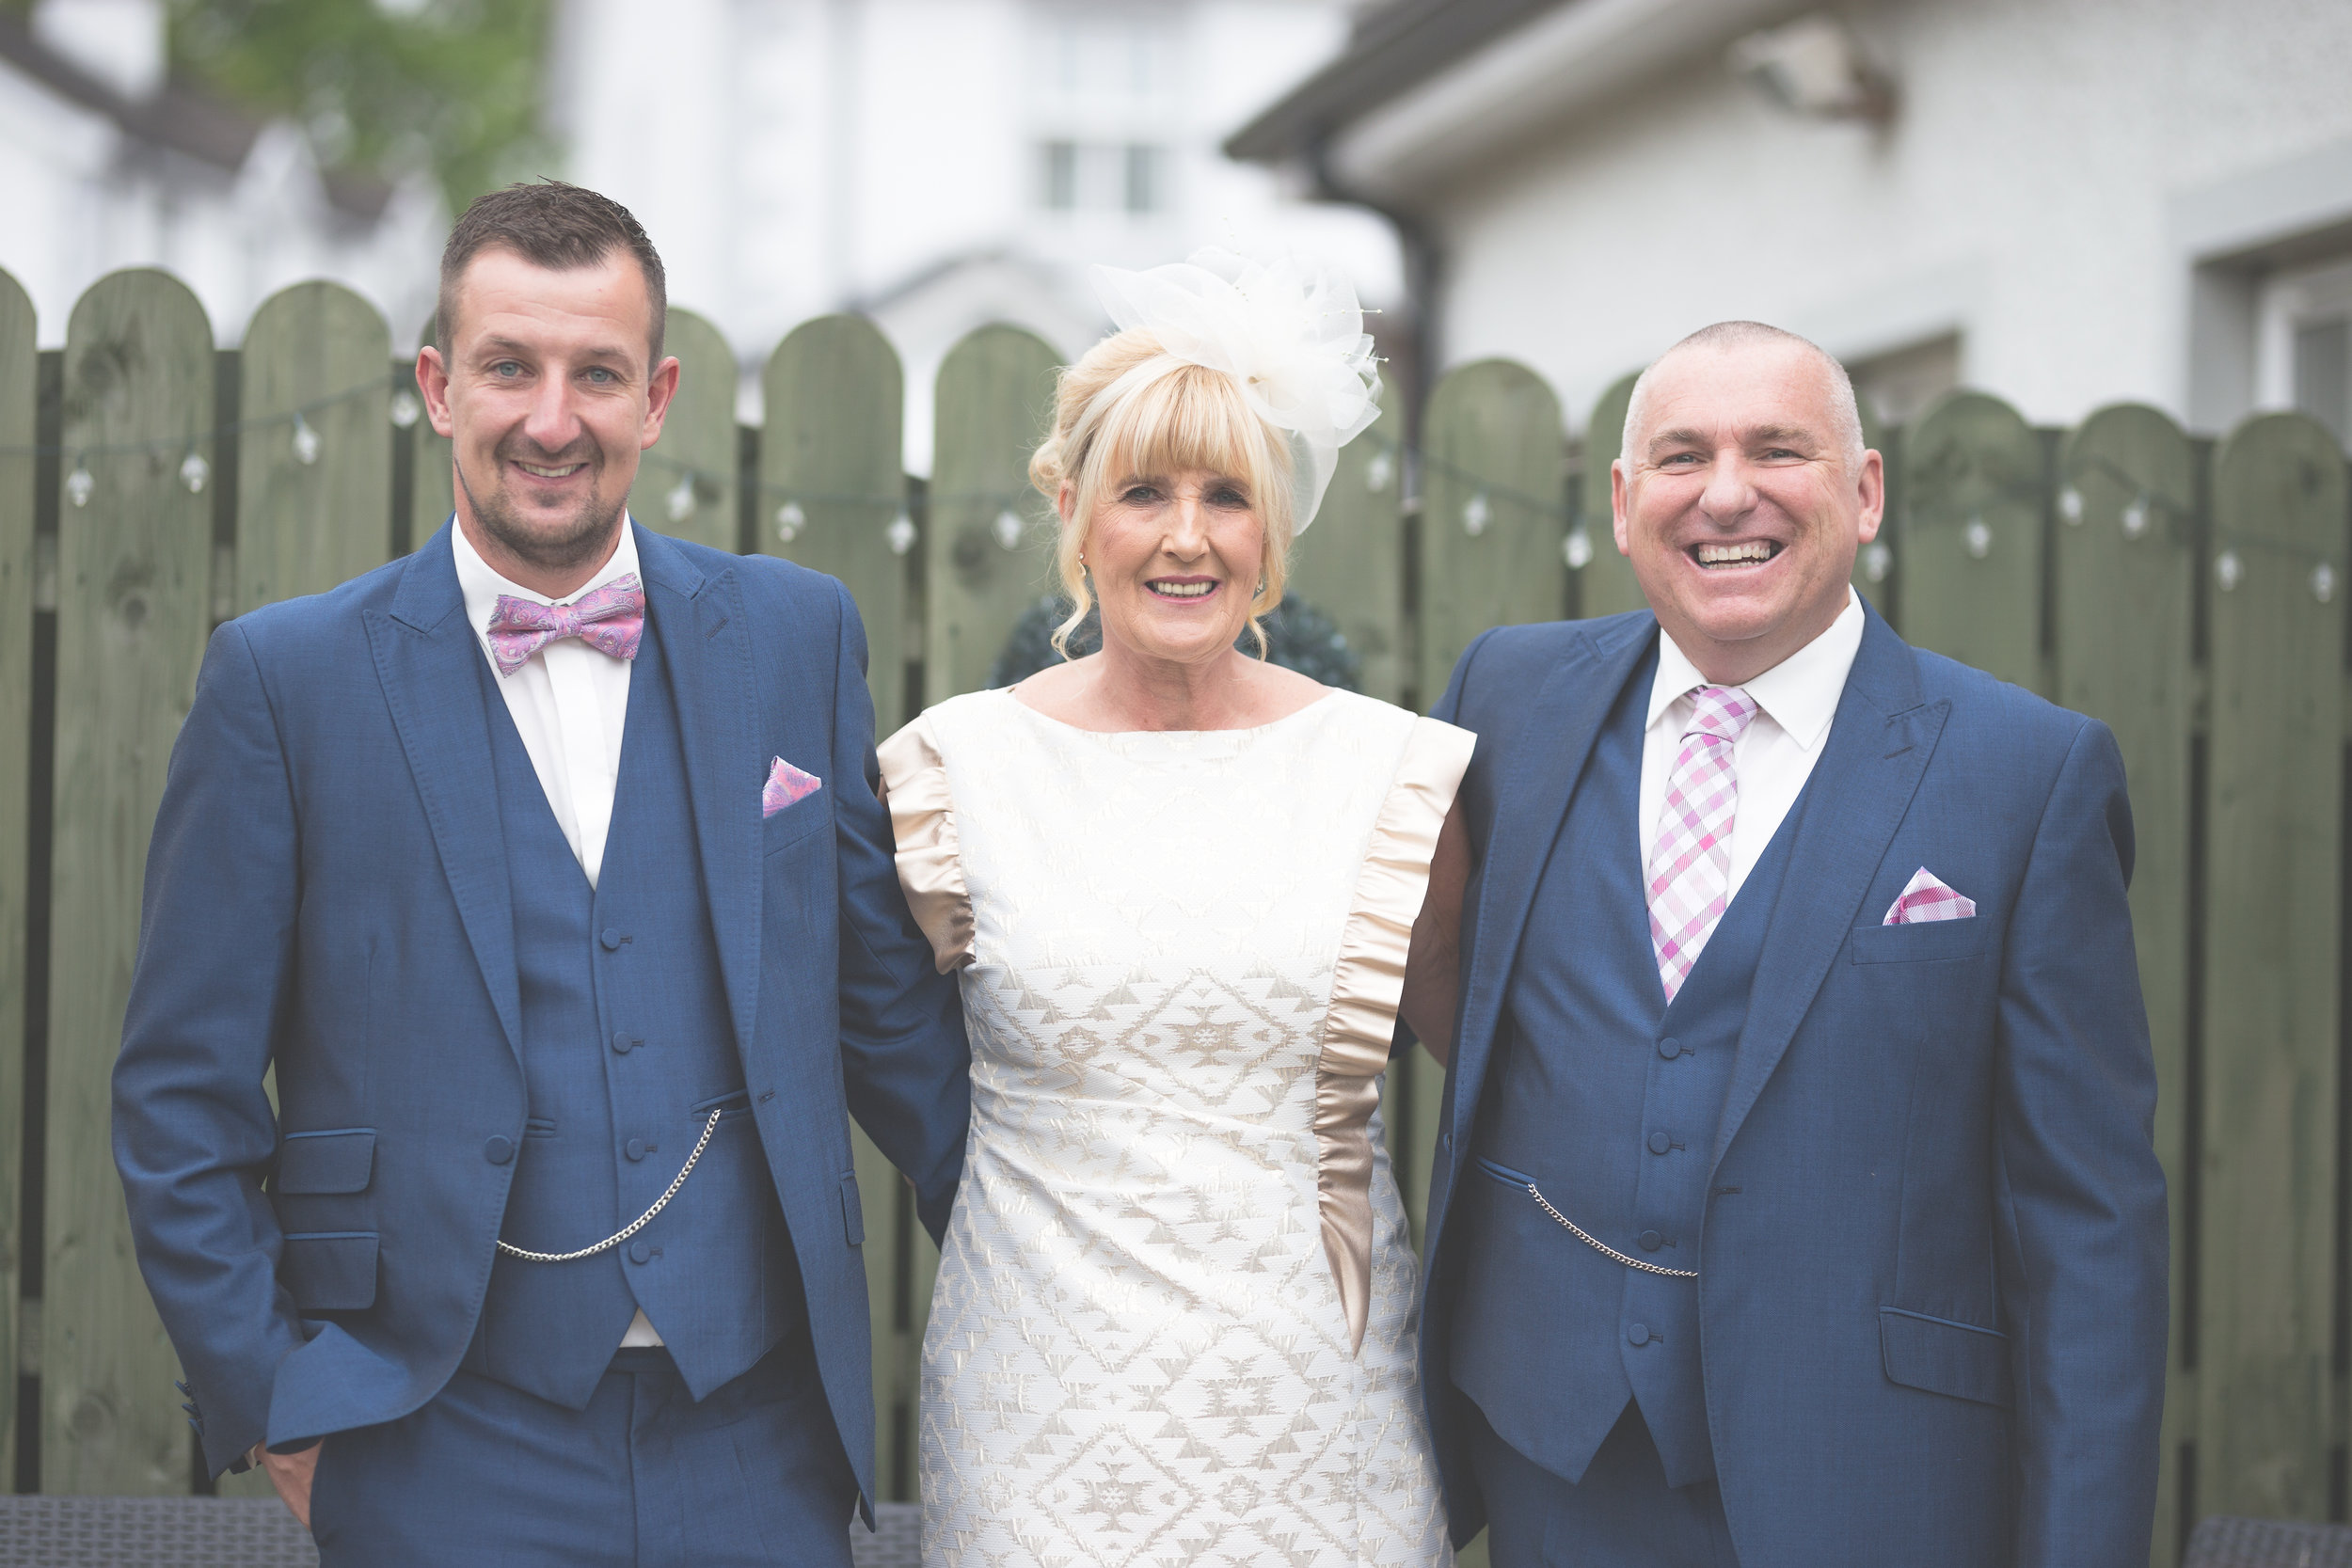 Antoinette & Stephen - Groom & Groomsmen | Brian McEwan Photography | Wedding Photographer Northern Ireland 56.jpg